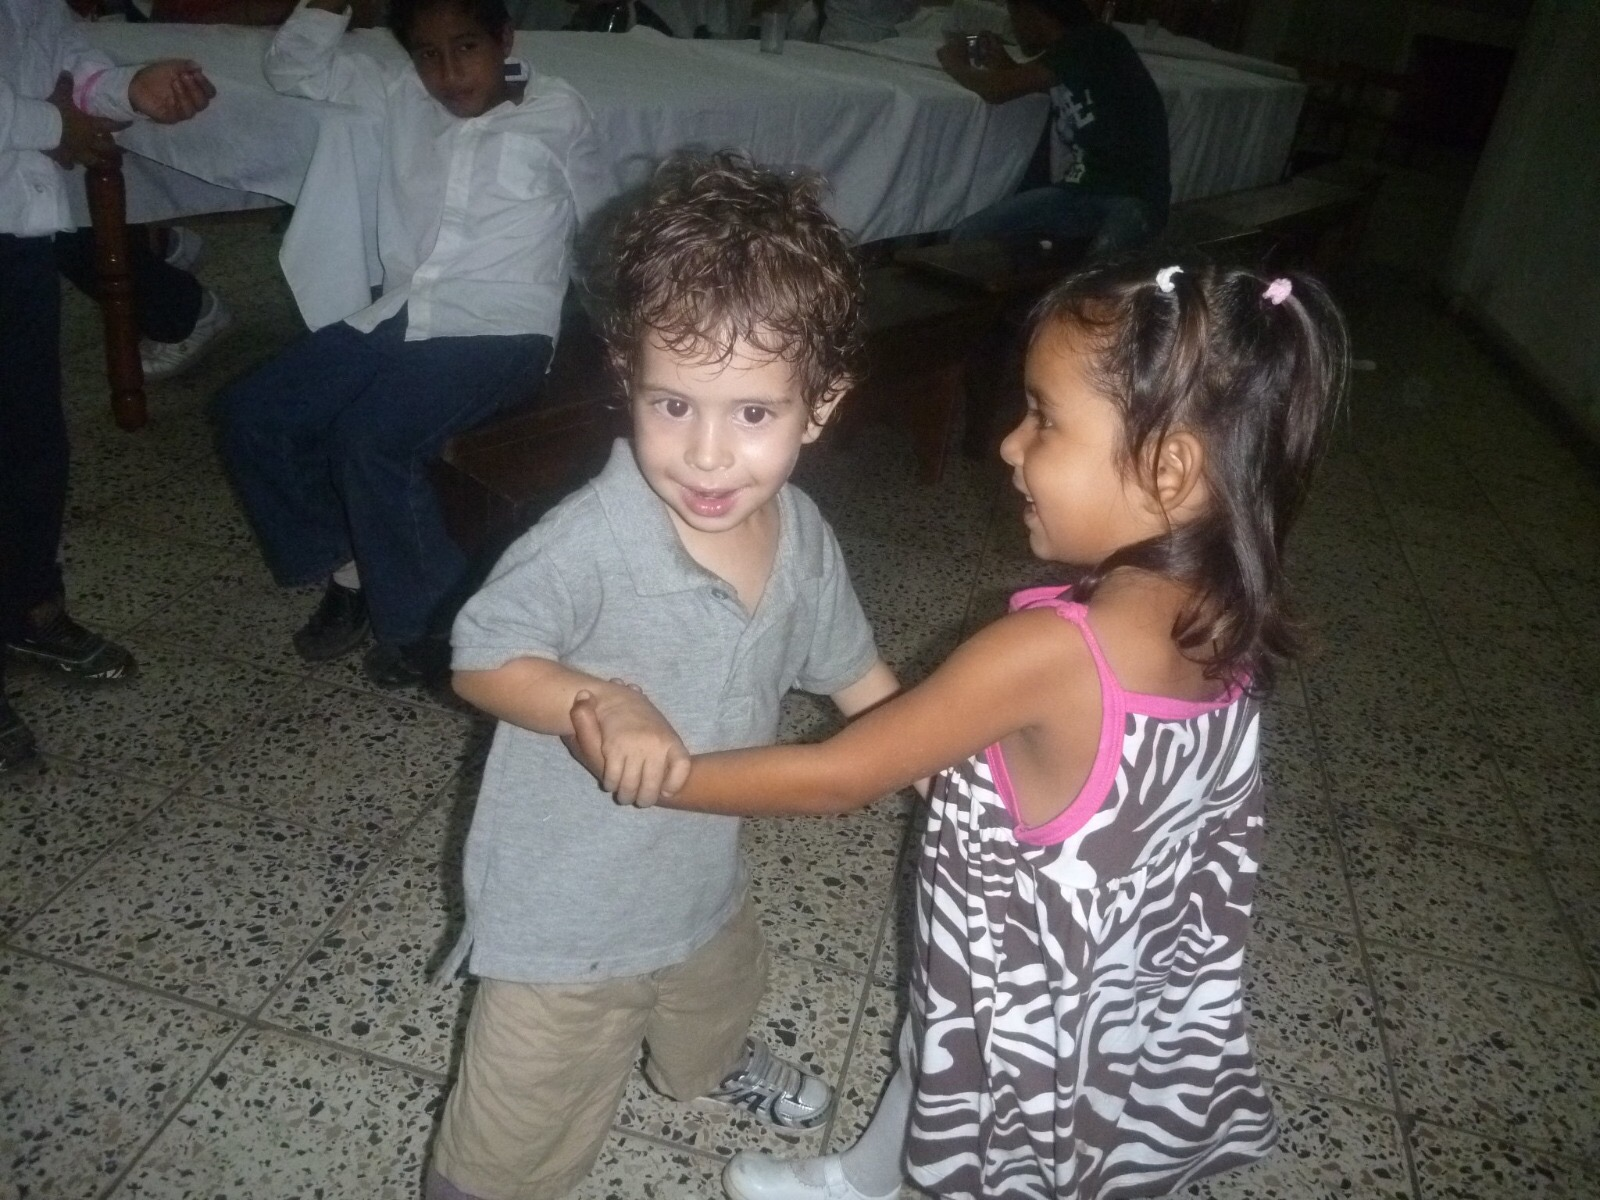 Perla dancing with Thomas (son of Amy and Wilson Escoto, Co-Directors of Operations)when they were little. Even though they are older now, they are still close friends!